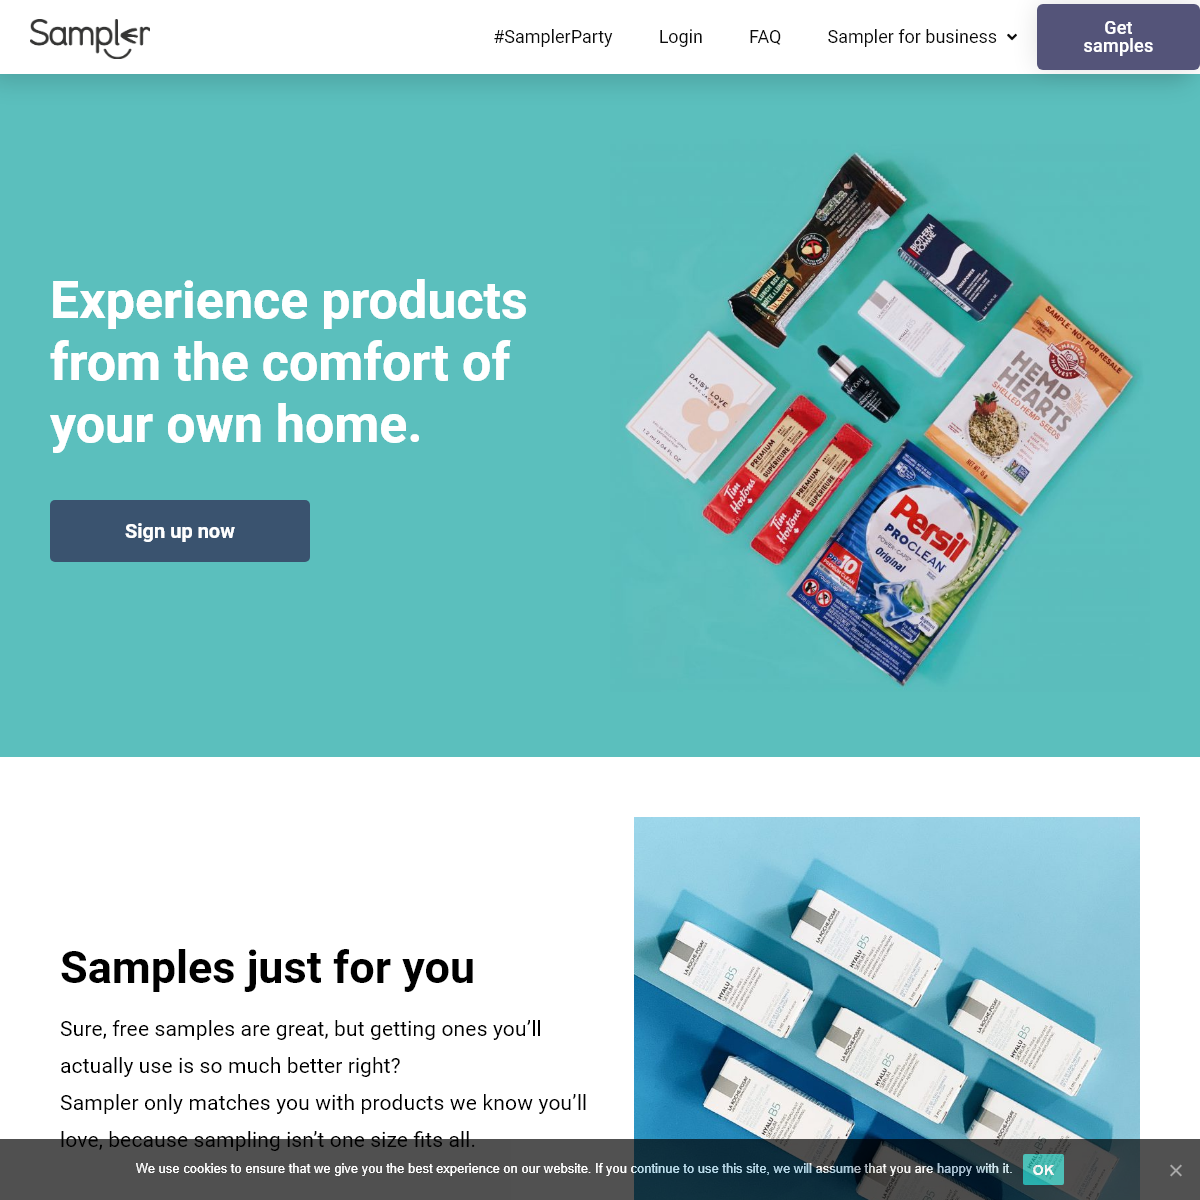 Digital product sampling – Get your product into the right hands, every time.